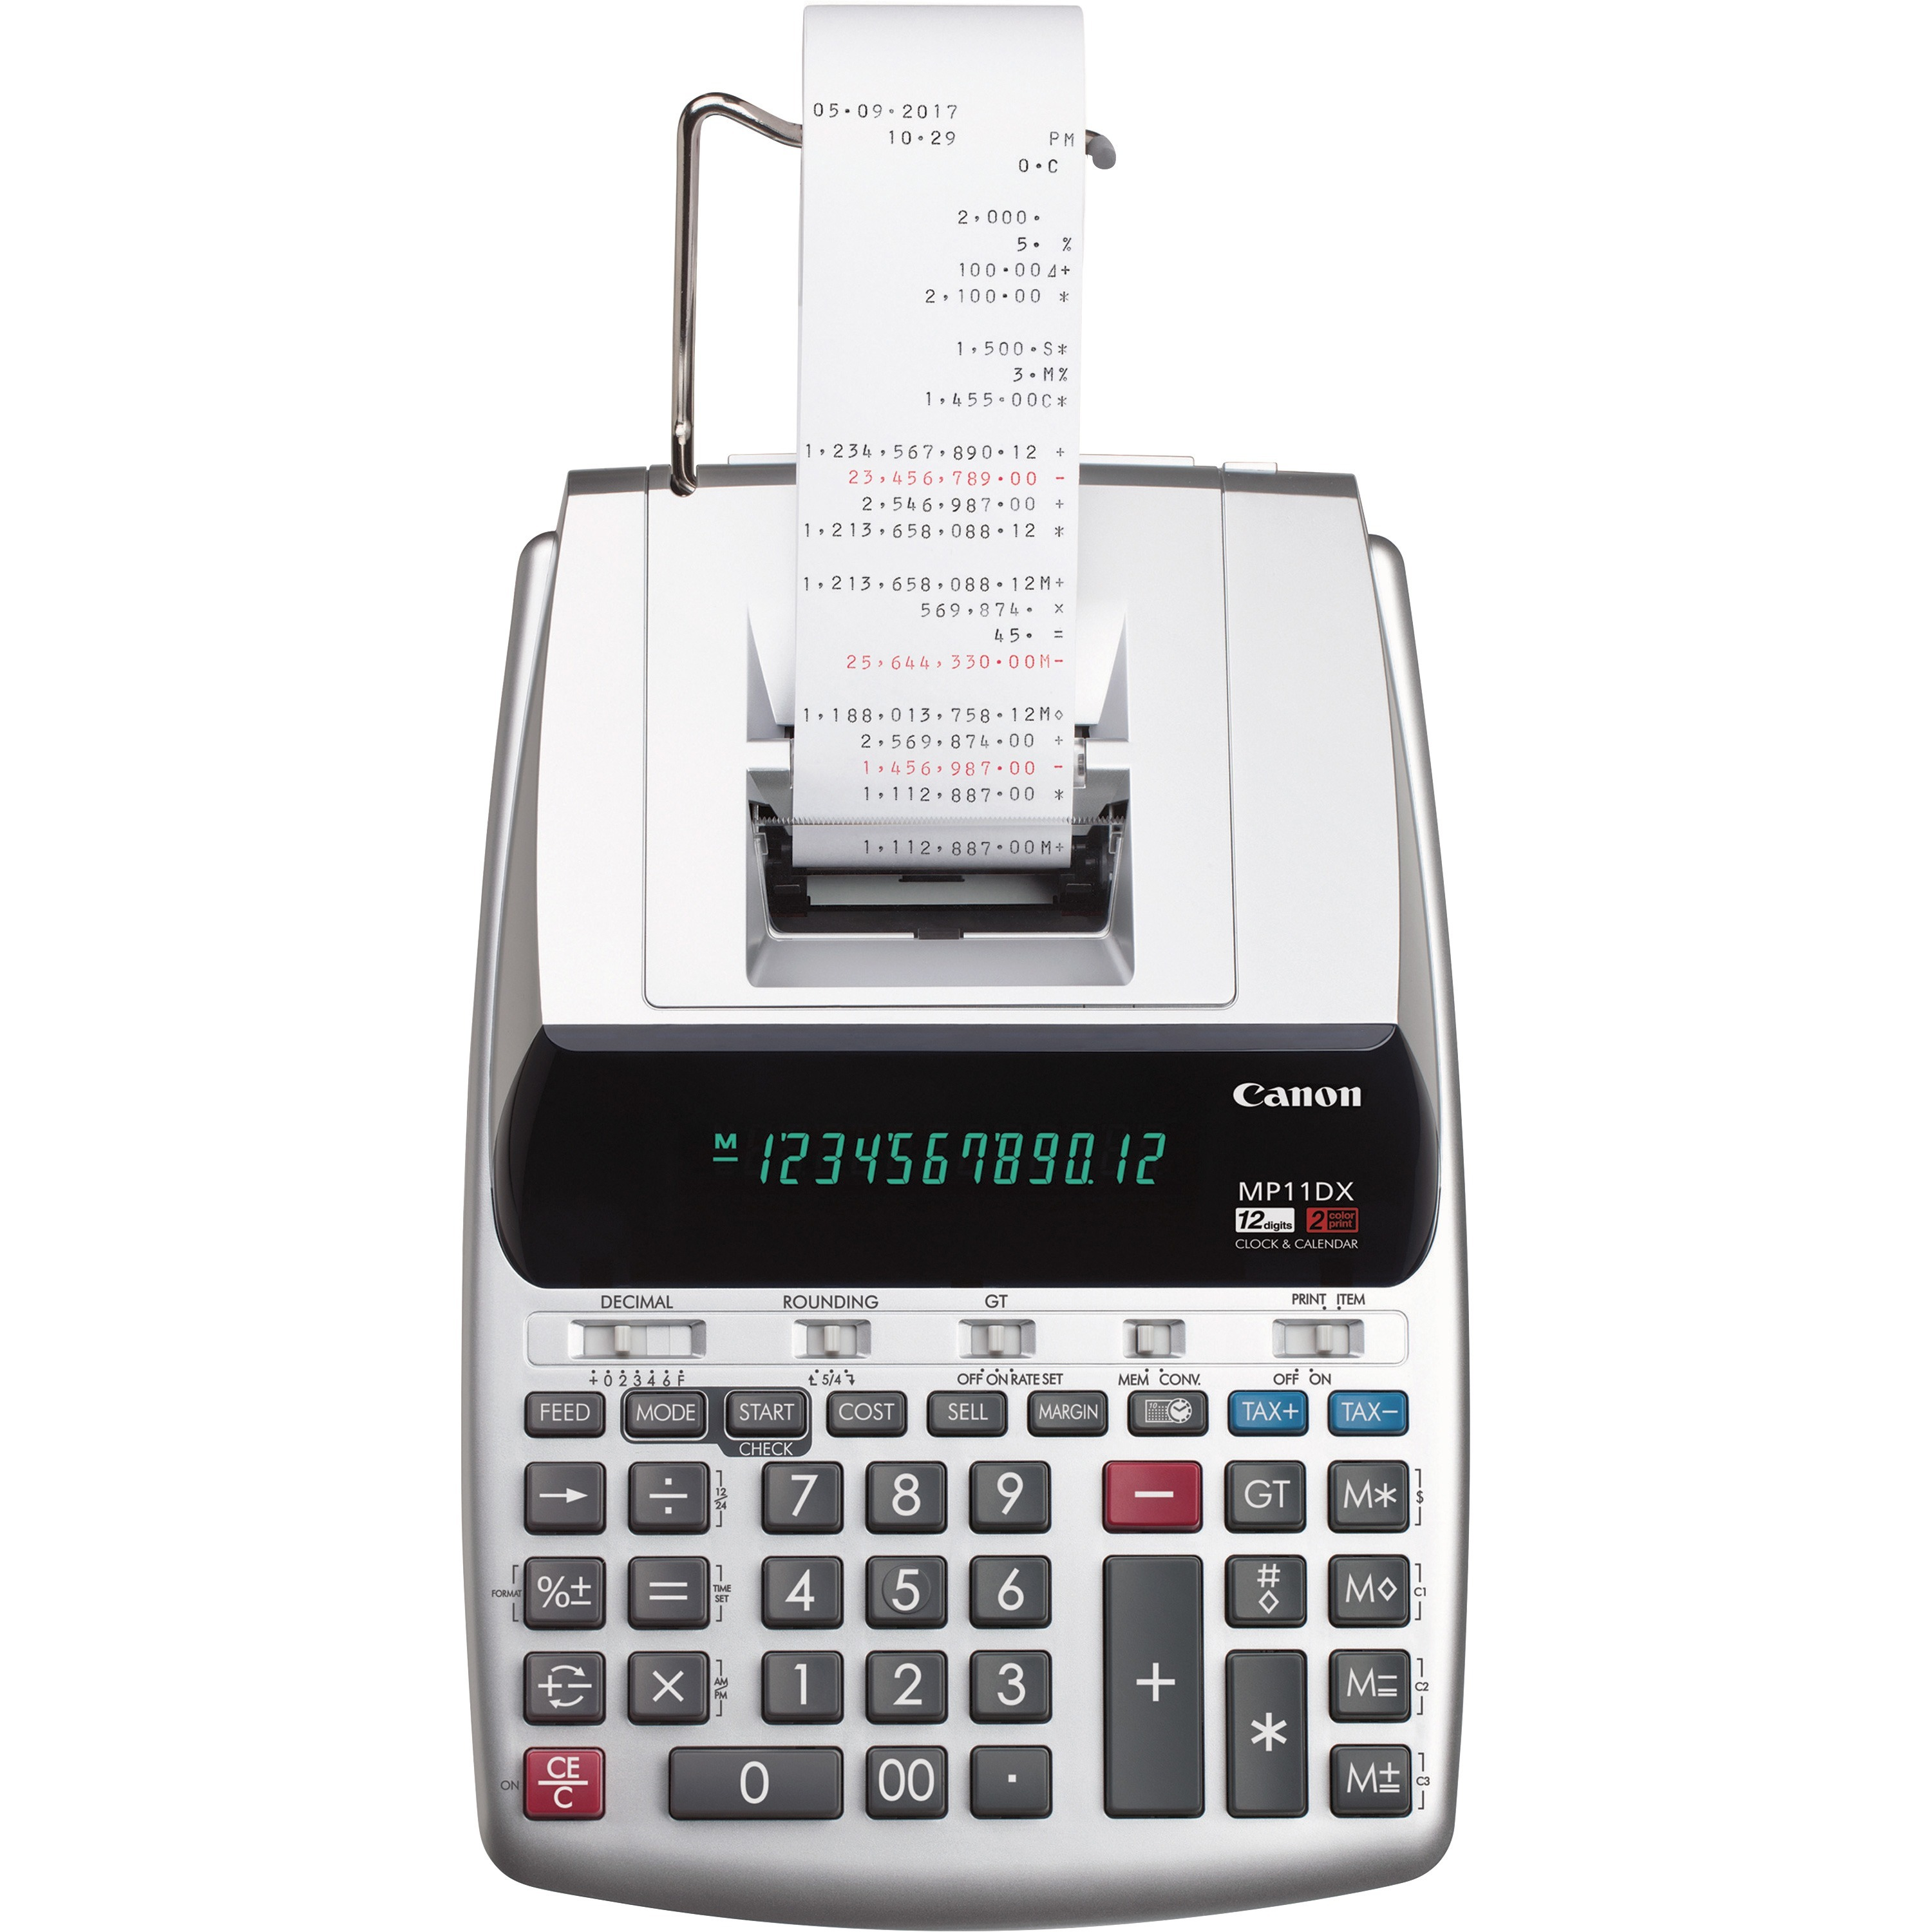 Canon, CNMMP11DX2, MP11DX 2-Color Printing Calculator, 1 Each, Silver by Canon, Inc